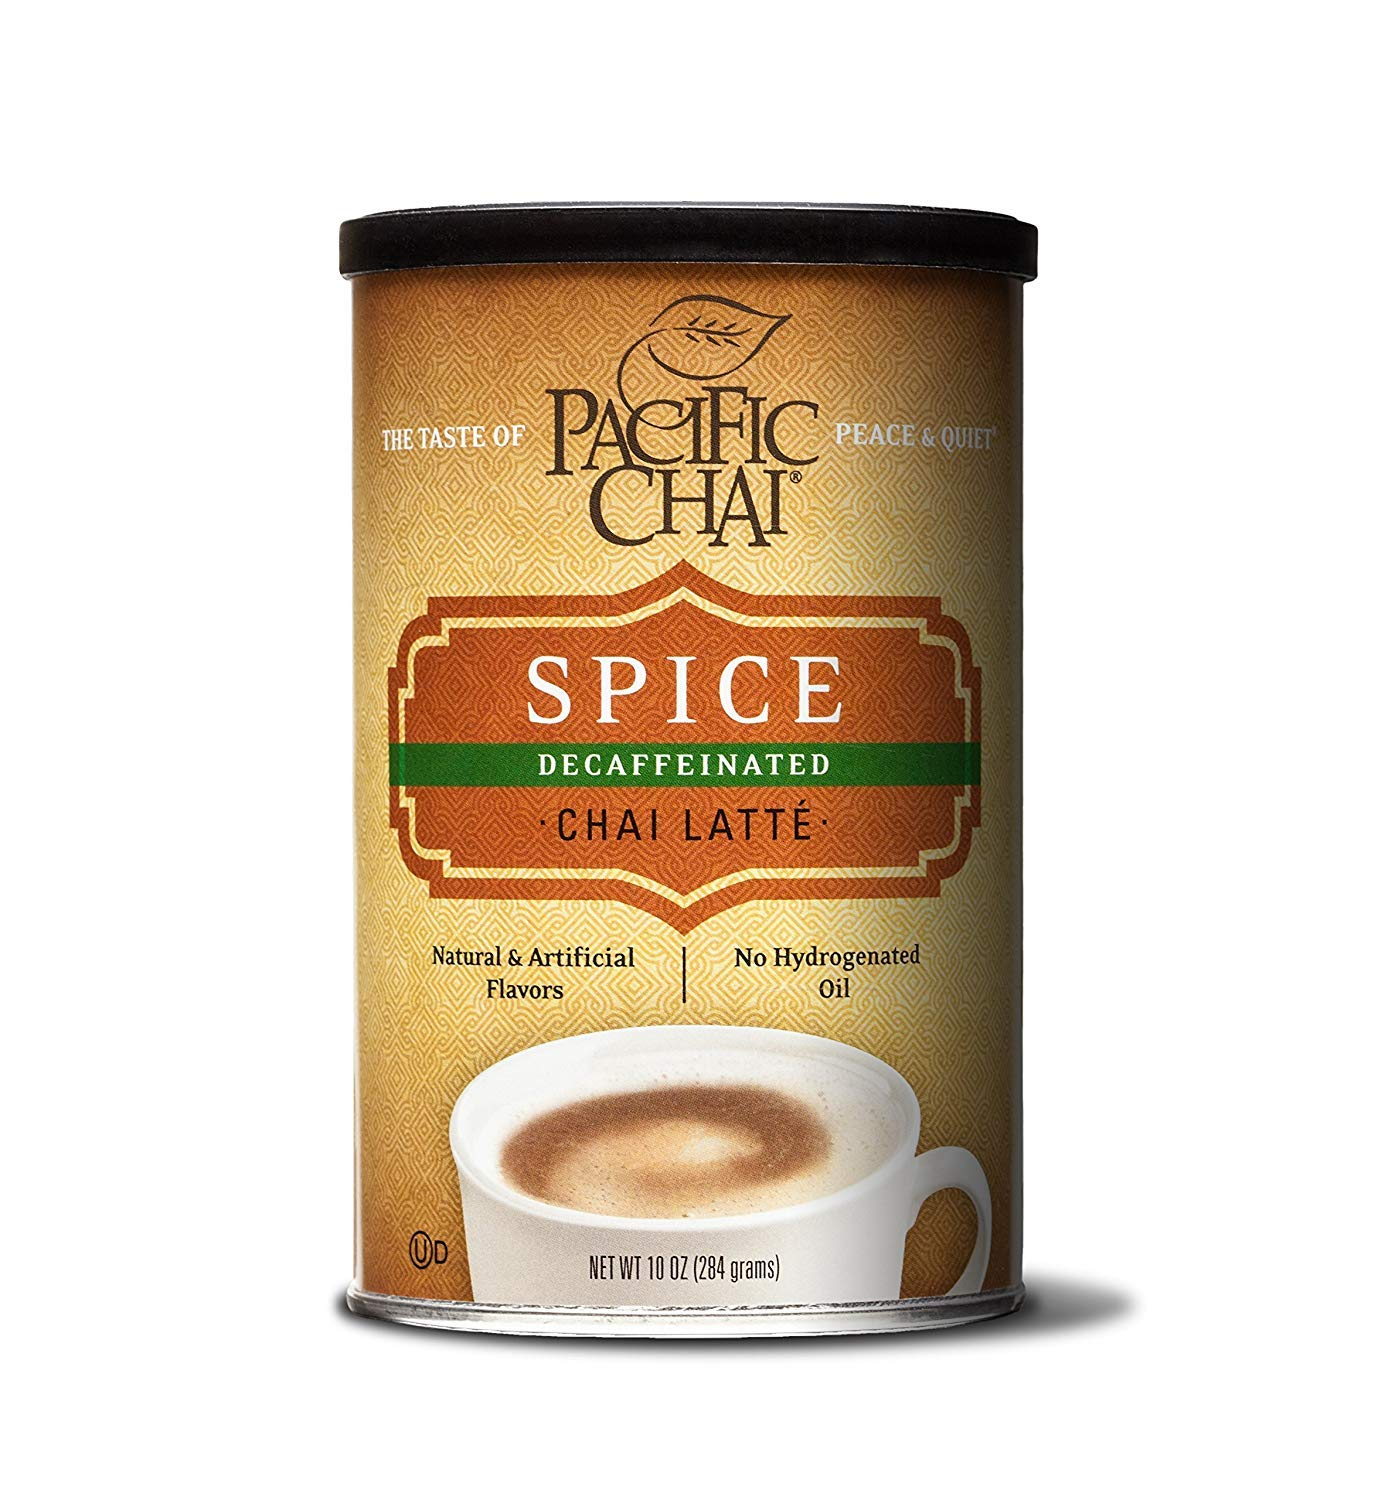 Pacific Chai Decaffeinated, Spice Chai Latte Mix, 10 oz Canisters (Pack of 6)